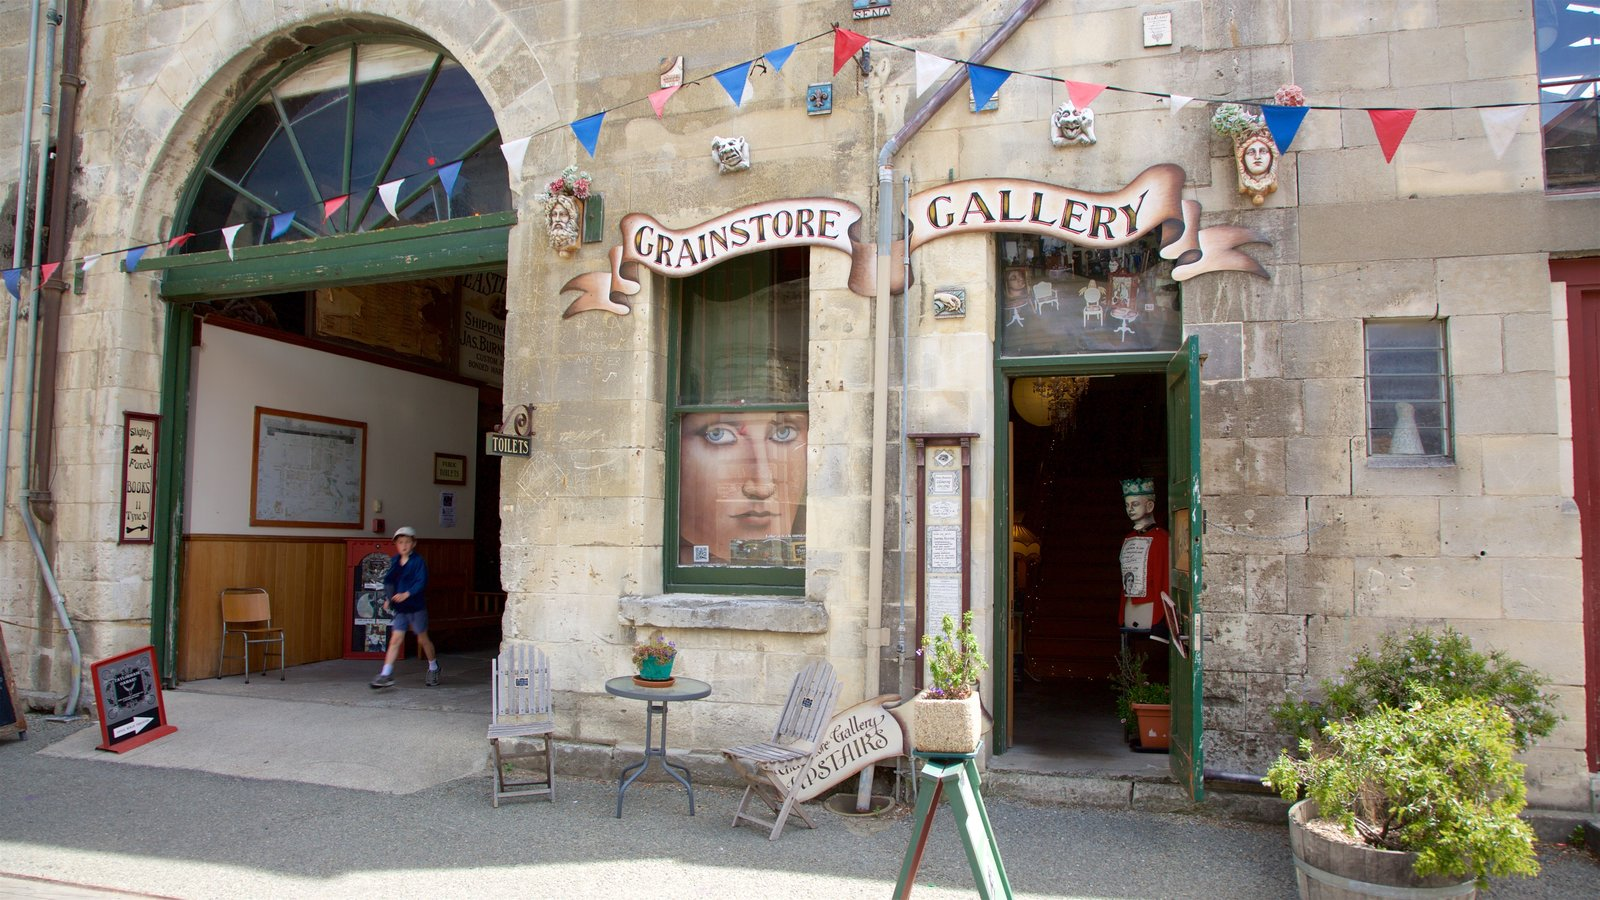 Grainstore Gallery showing heritage architecture